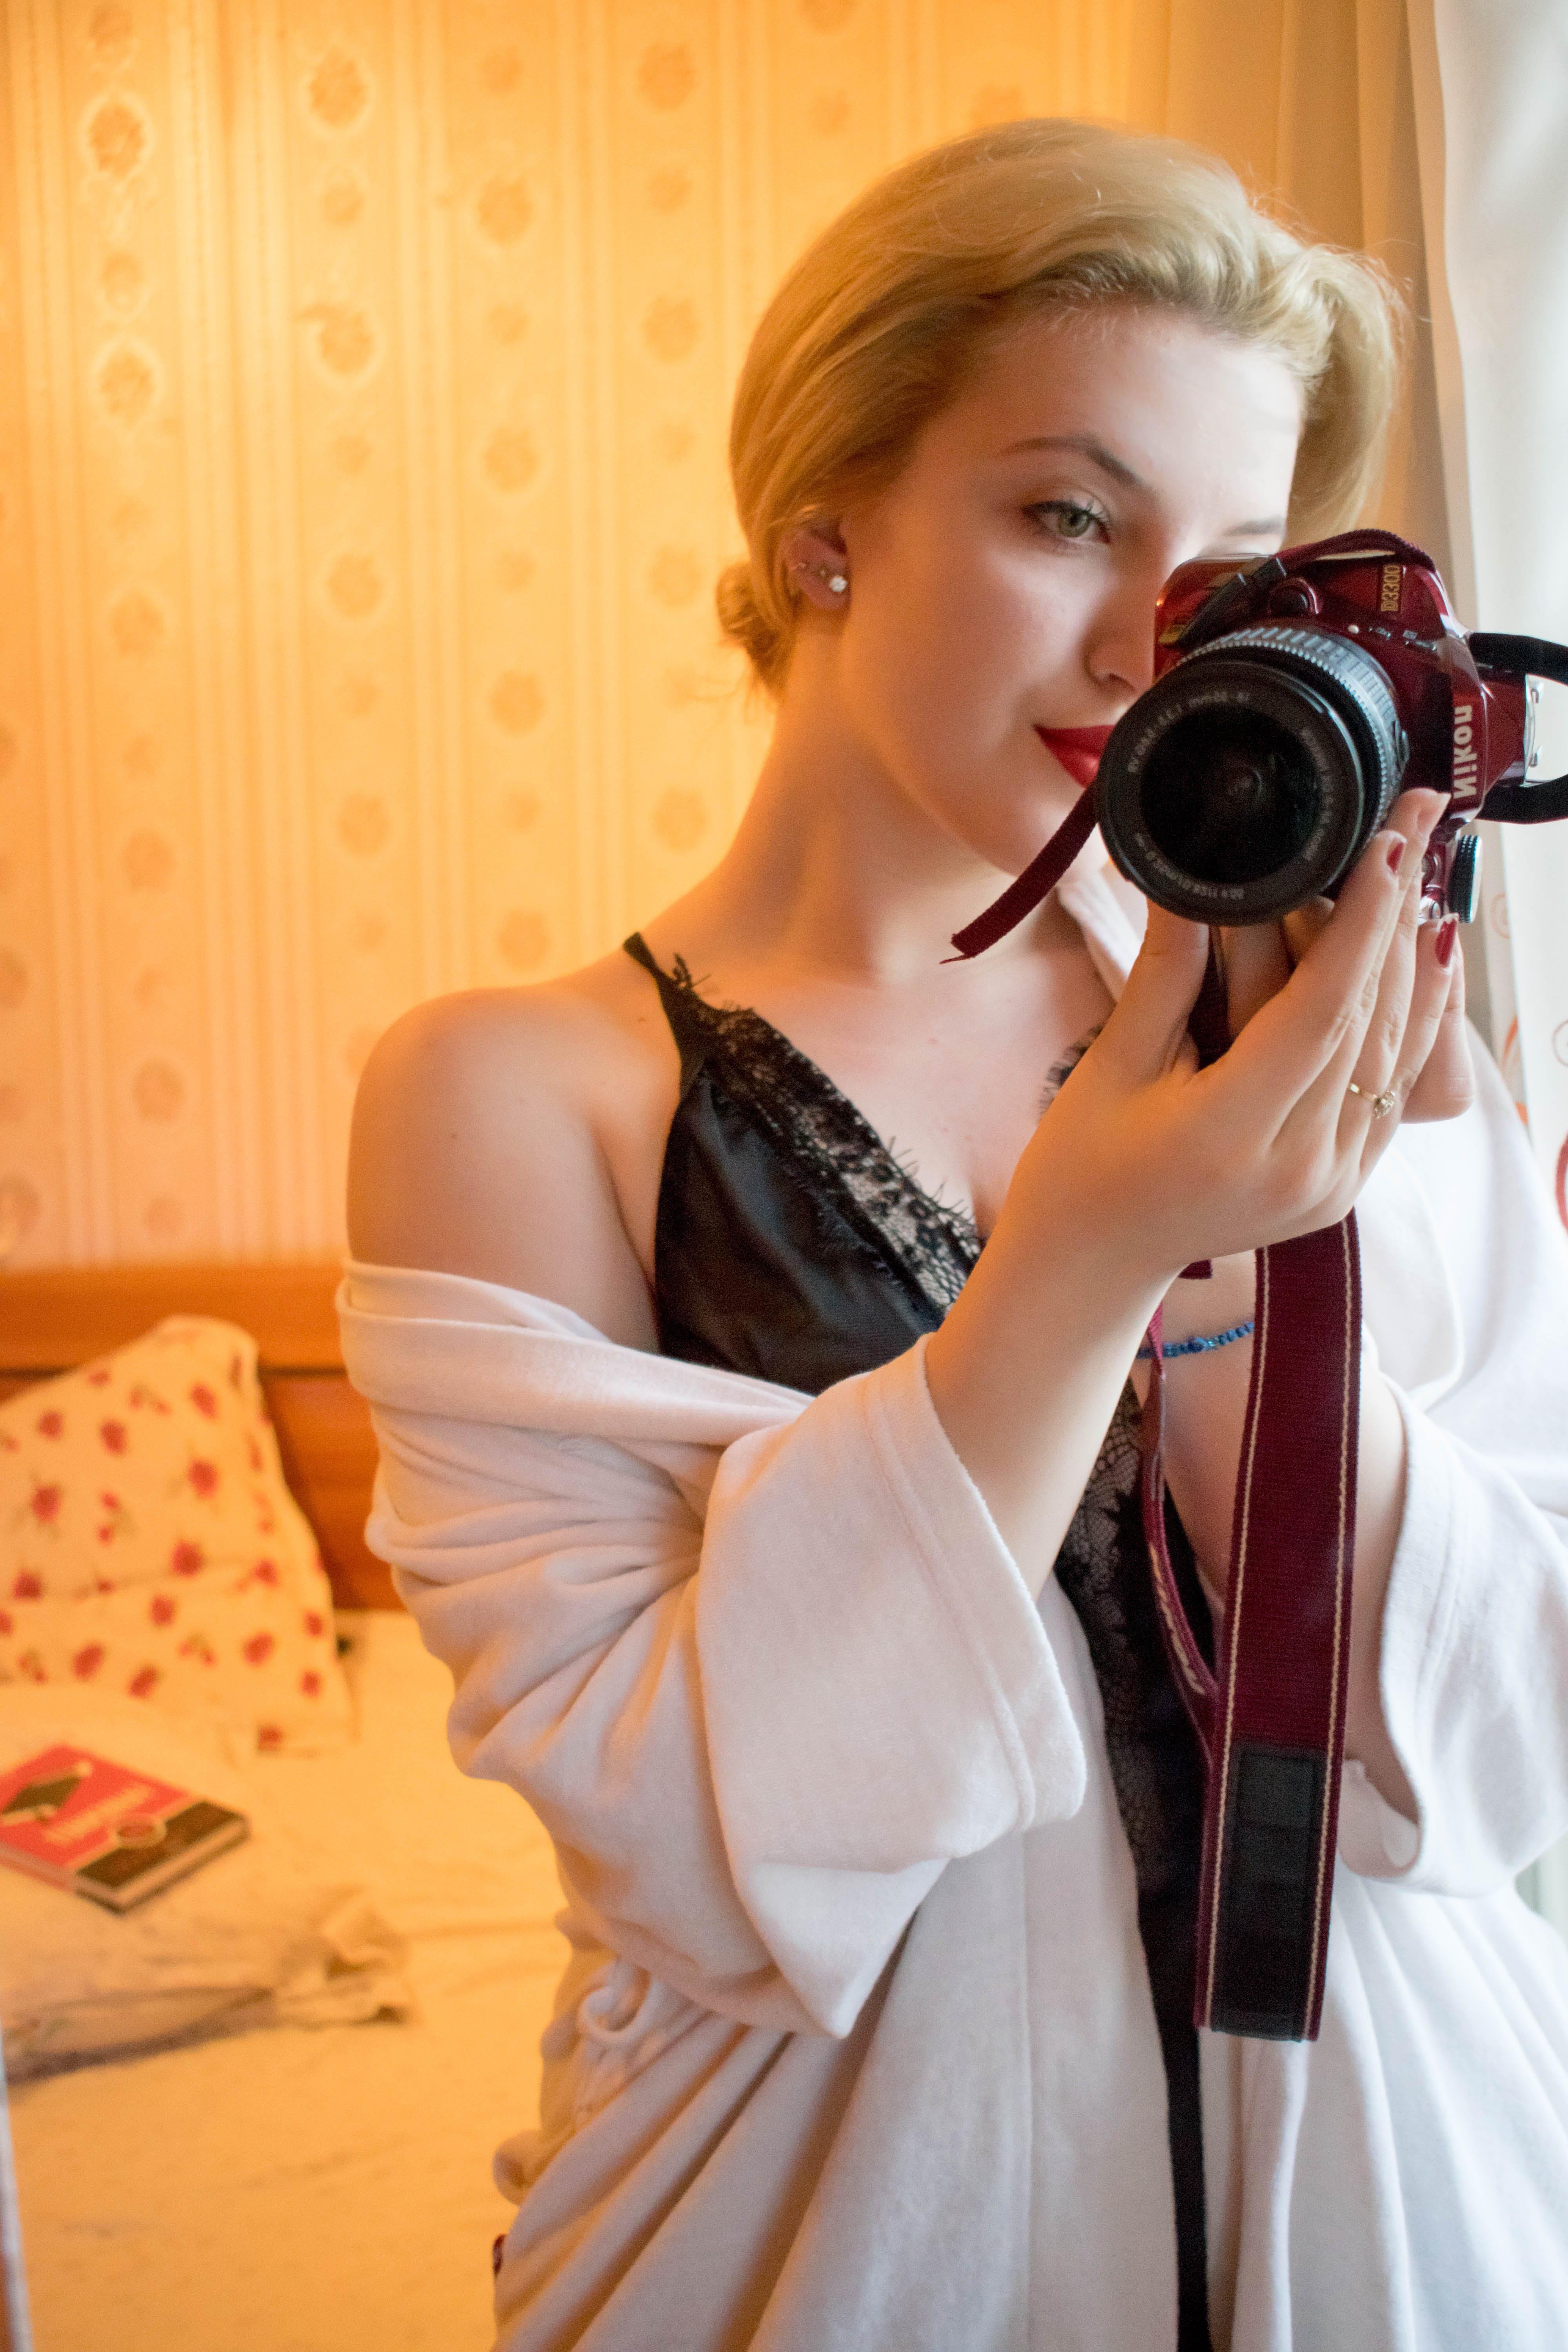 Woman Wearing Black Lace Floral Spaghetti Strap Dress Holding Black and Red Samsung Bridge Camera in Room